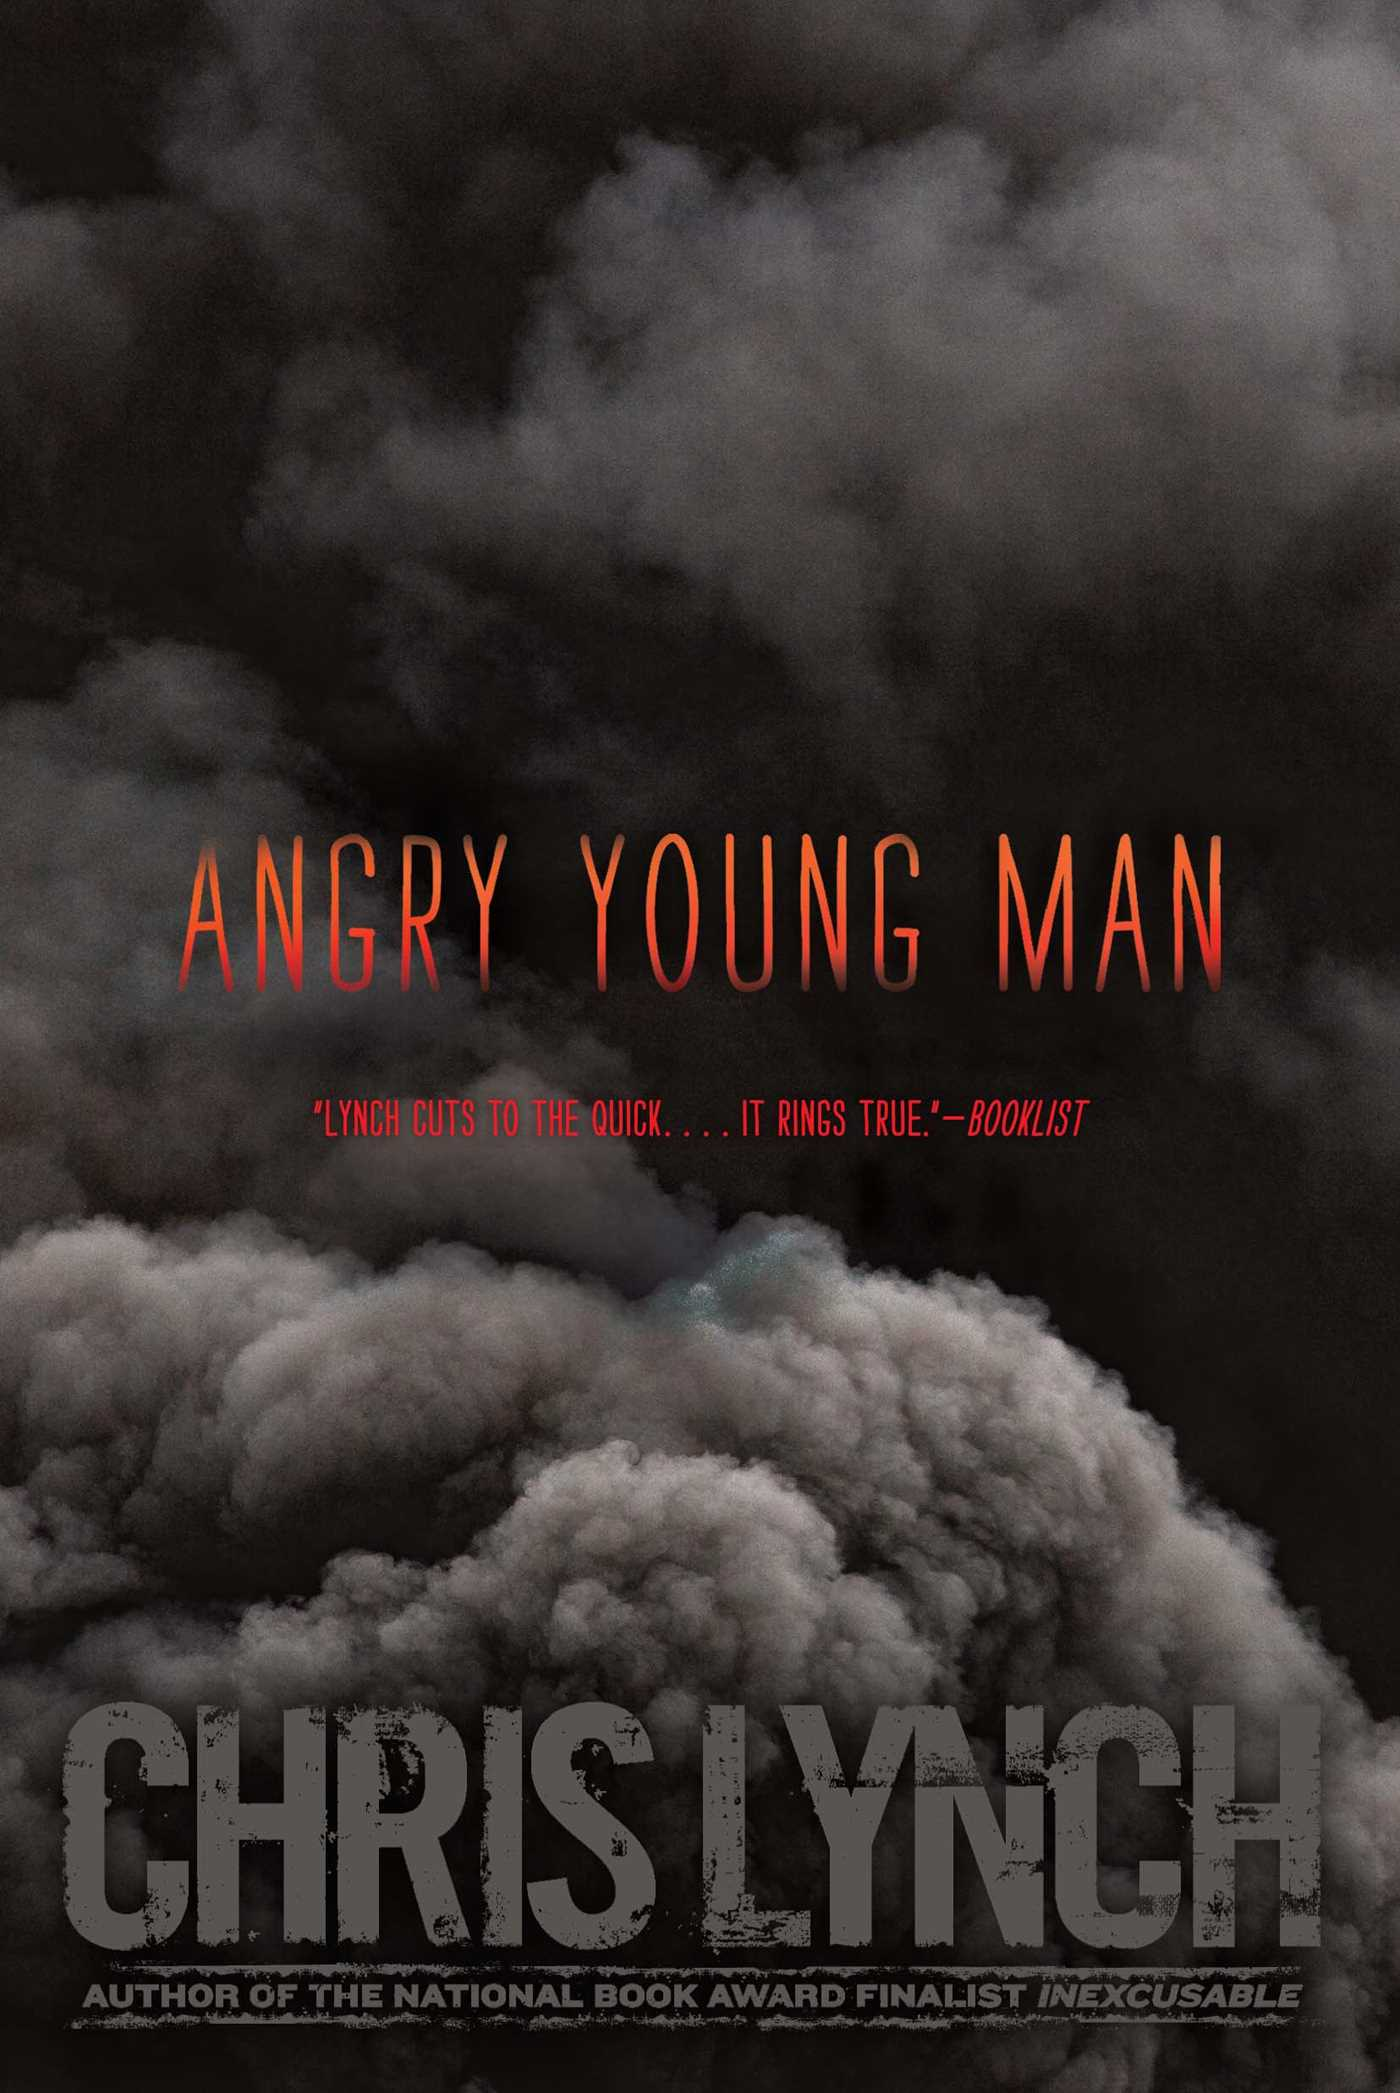 Angry young man 9781442419896 hr